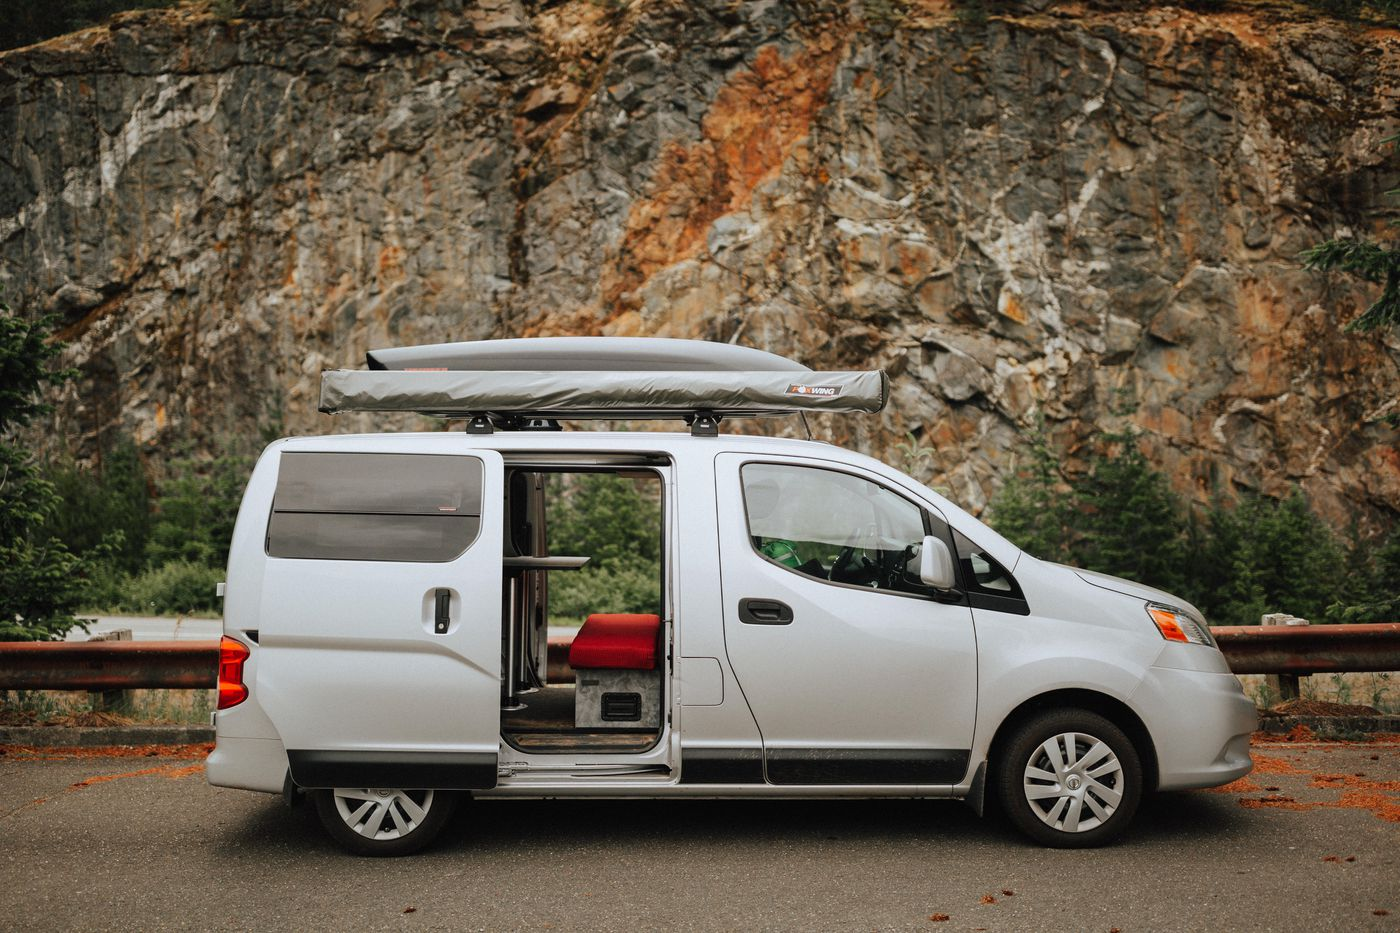 8964c13872 The 5 best affordable RVs and camper vans you can buy right now - Curbed